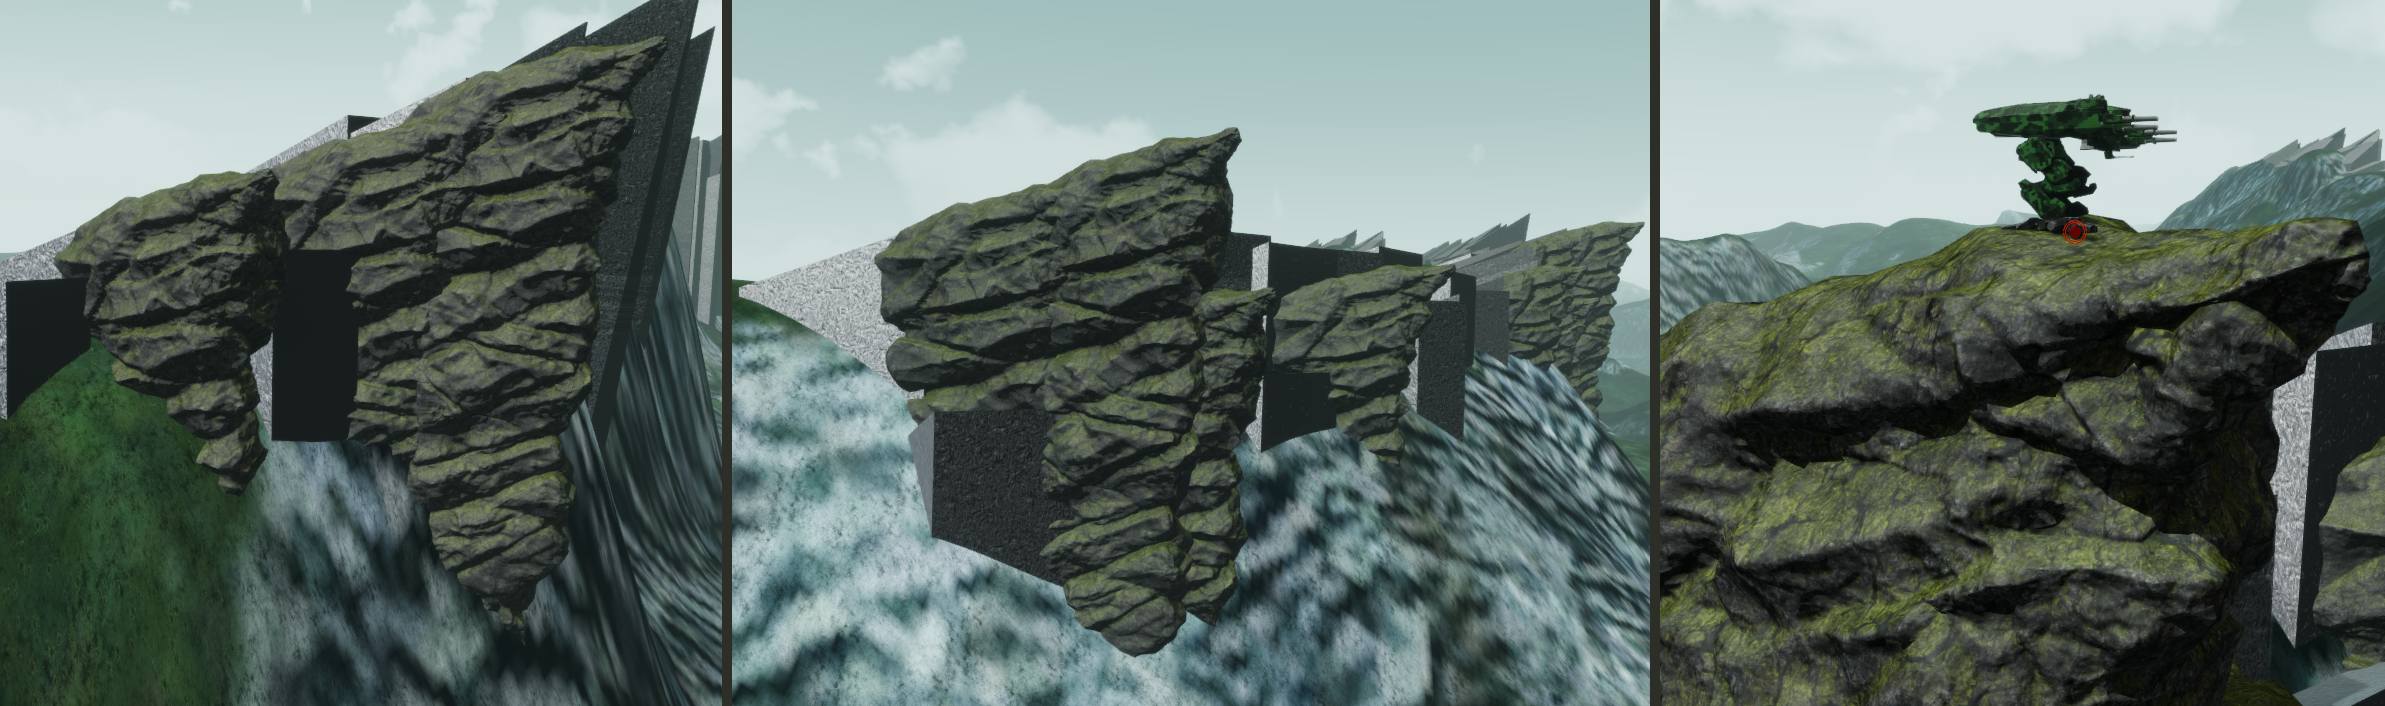 LoDR_Cliff_WIP_06.png